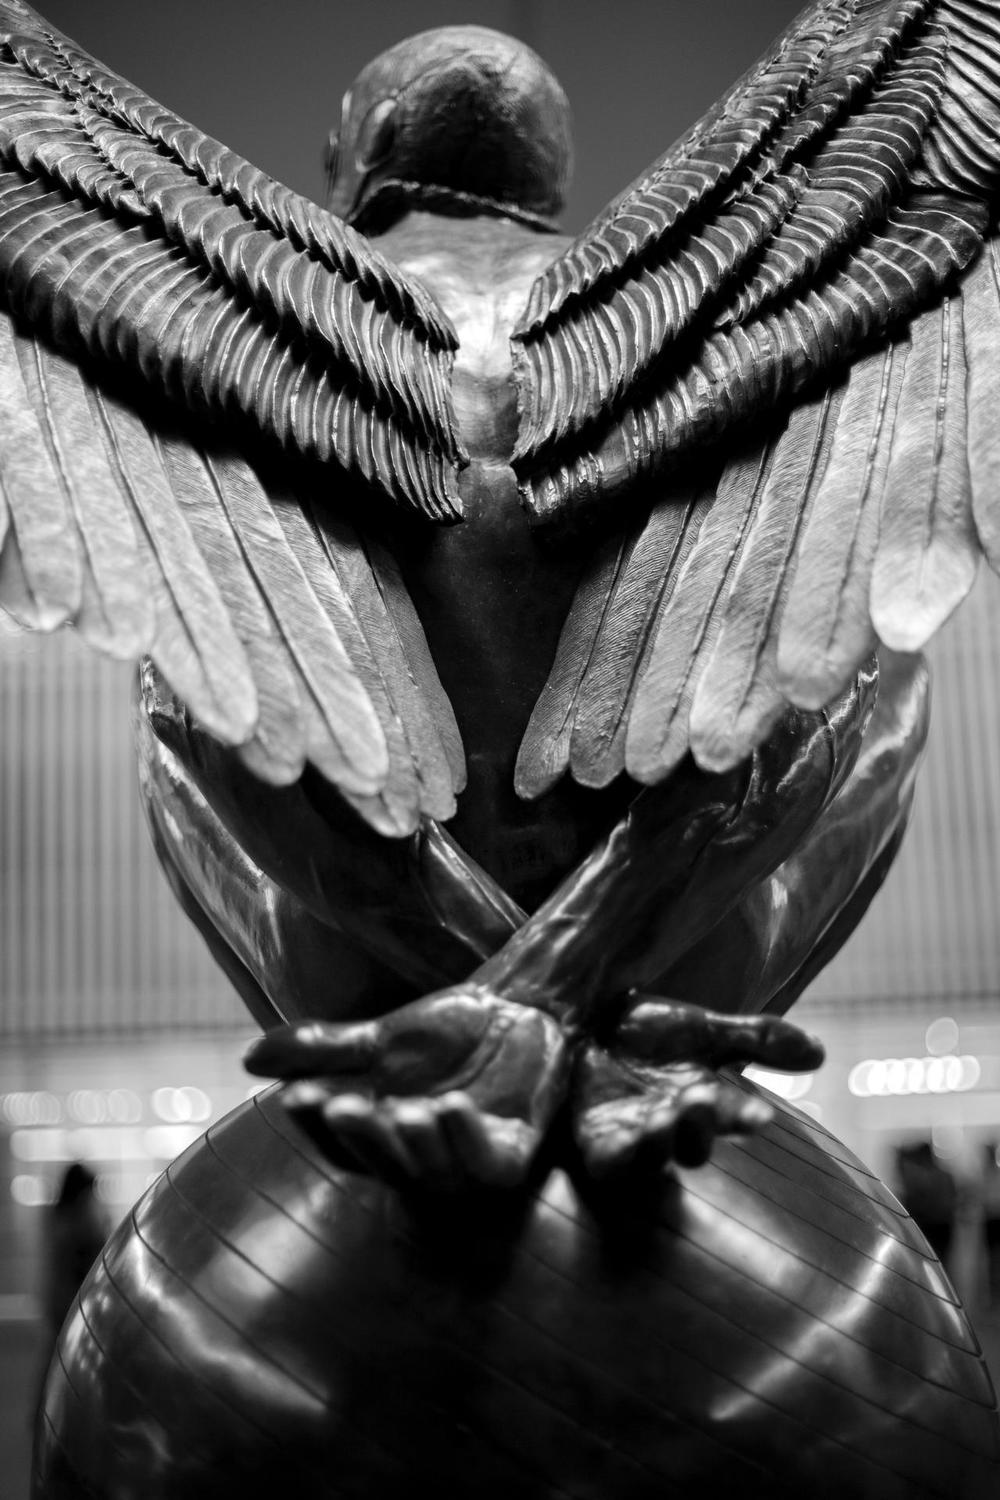 Winged Man Bound, Jorge Marin Sculpture, Mexico City, 2014